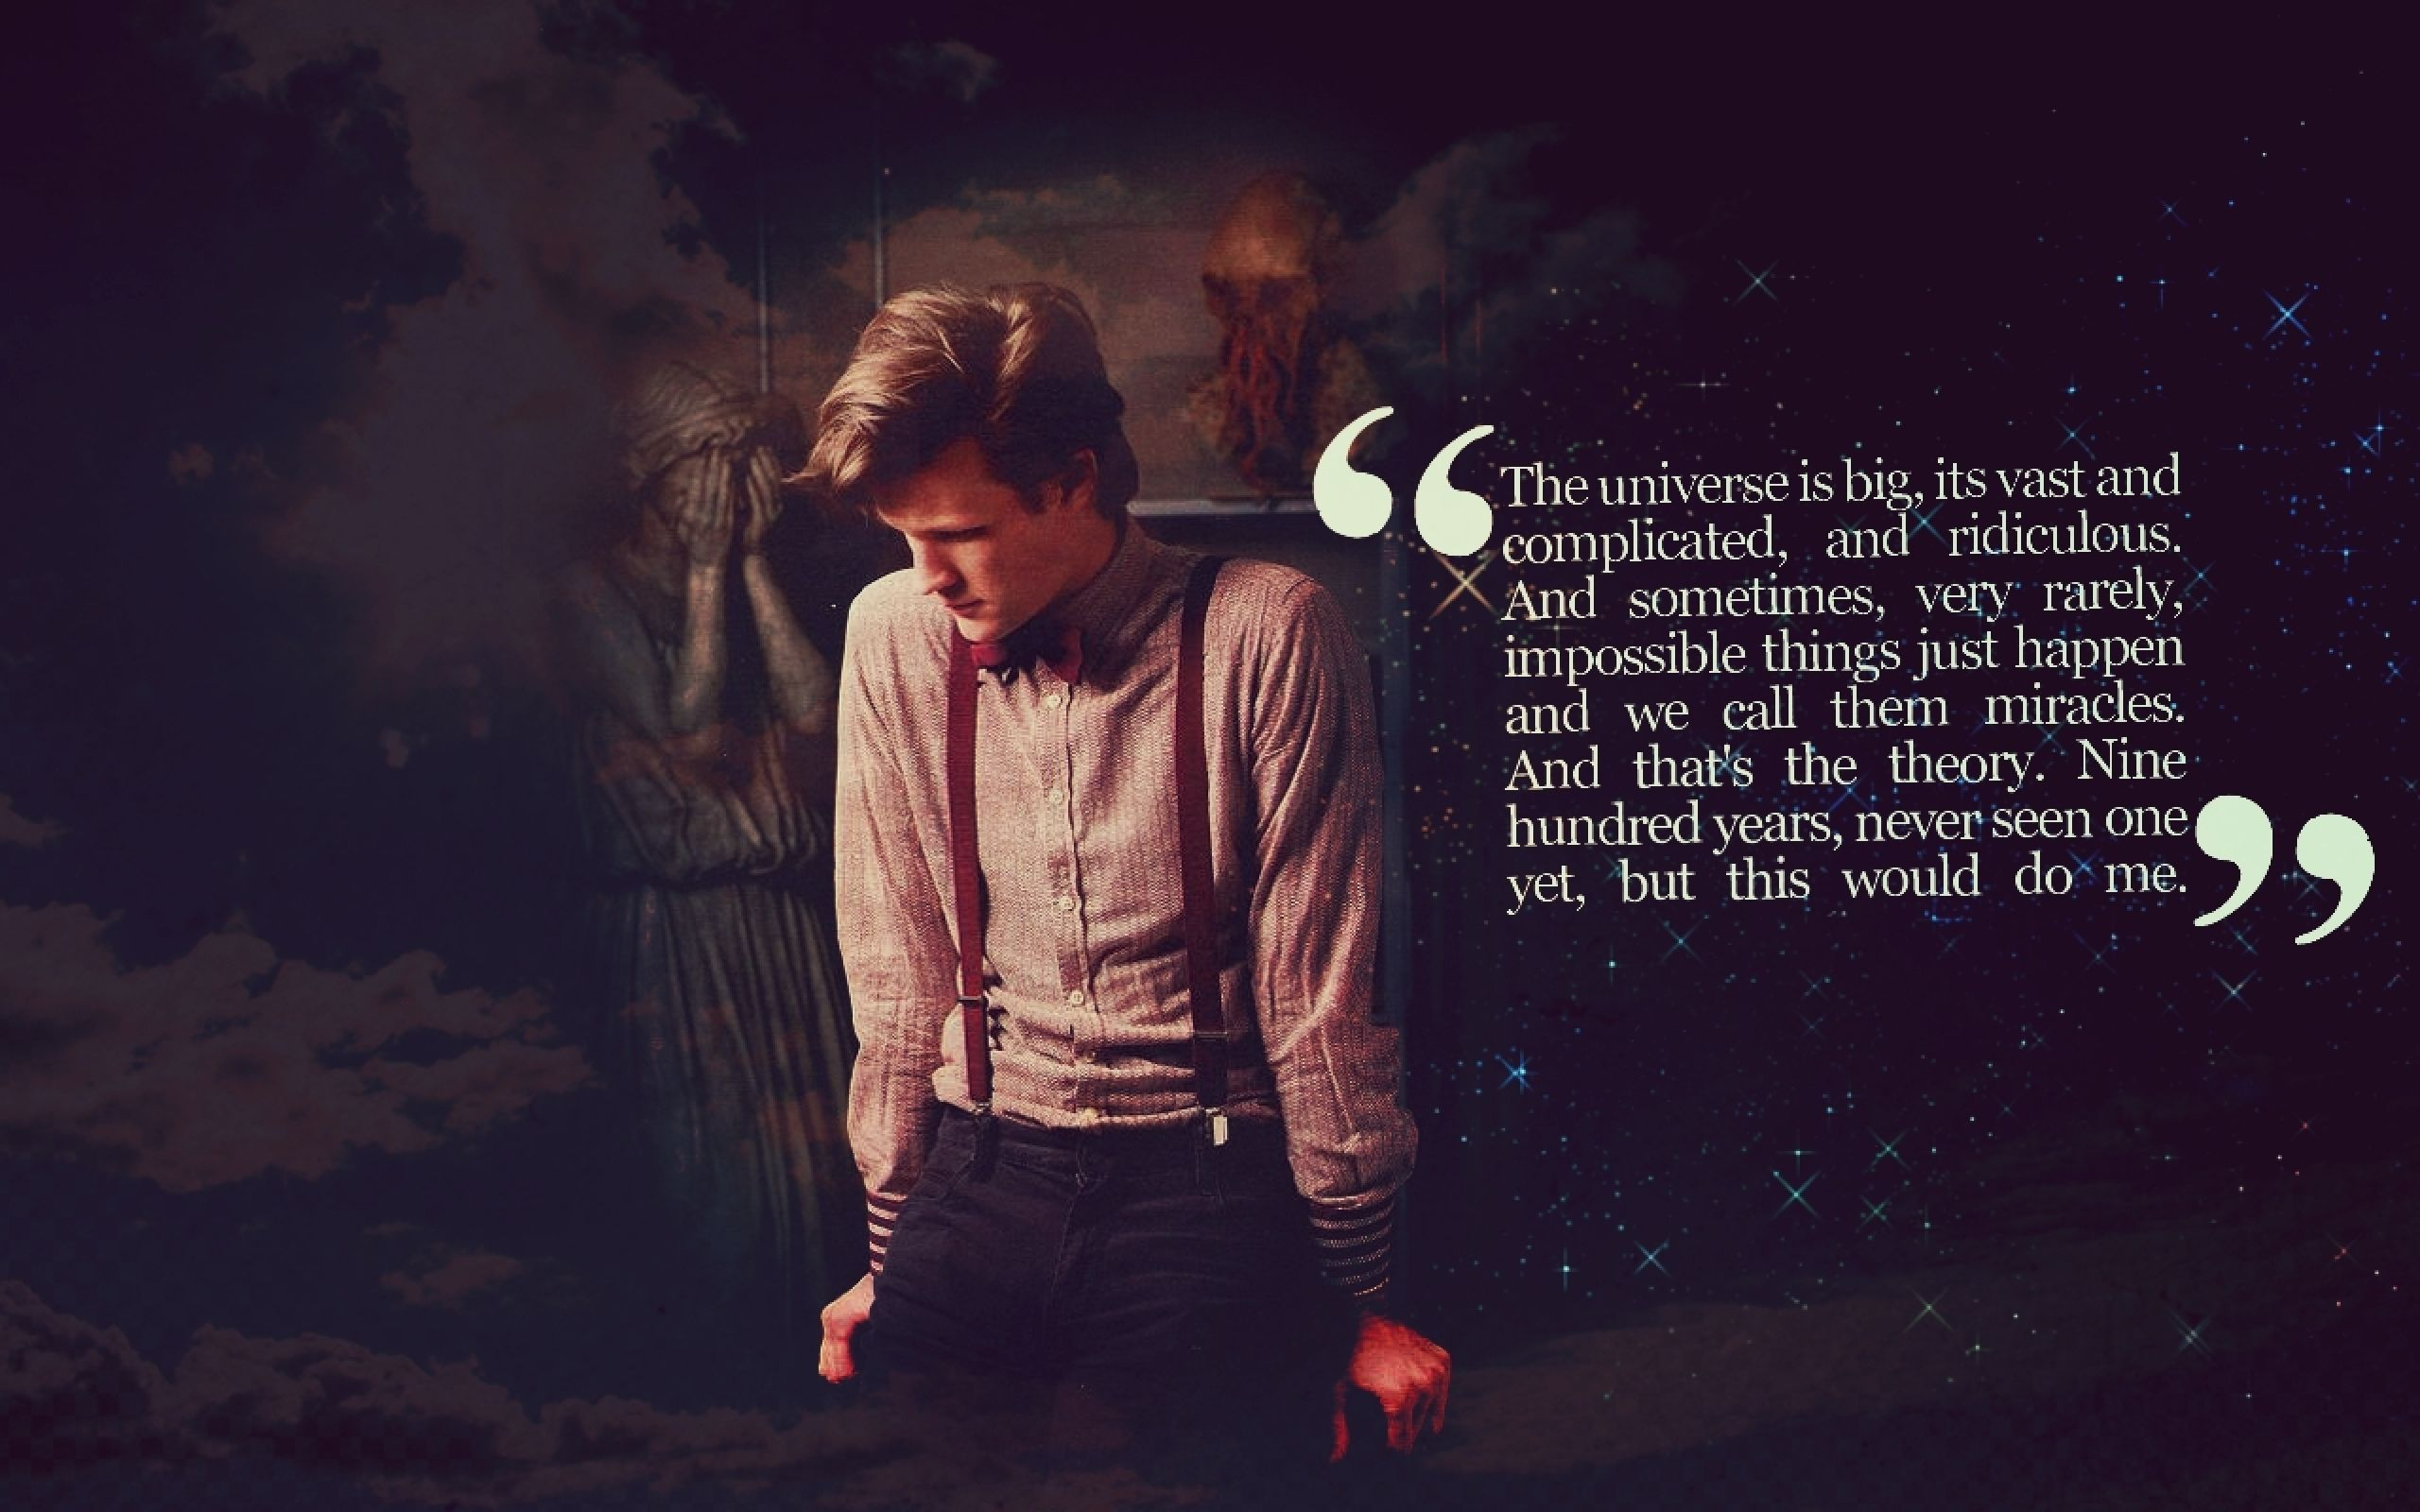 Quotes Matt Smith Eleventh Doctor Who Weeping Angel 1280x800 Wallpaper Art HD